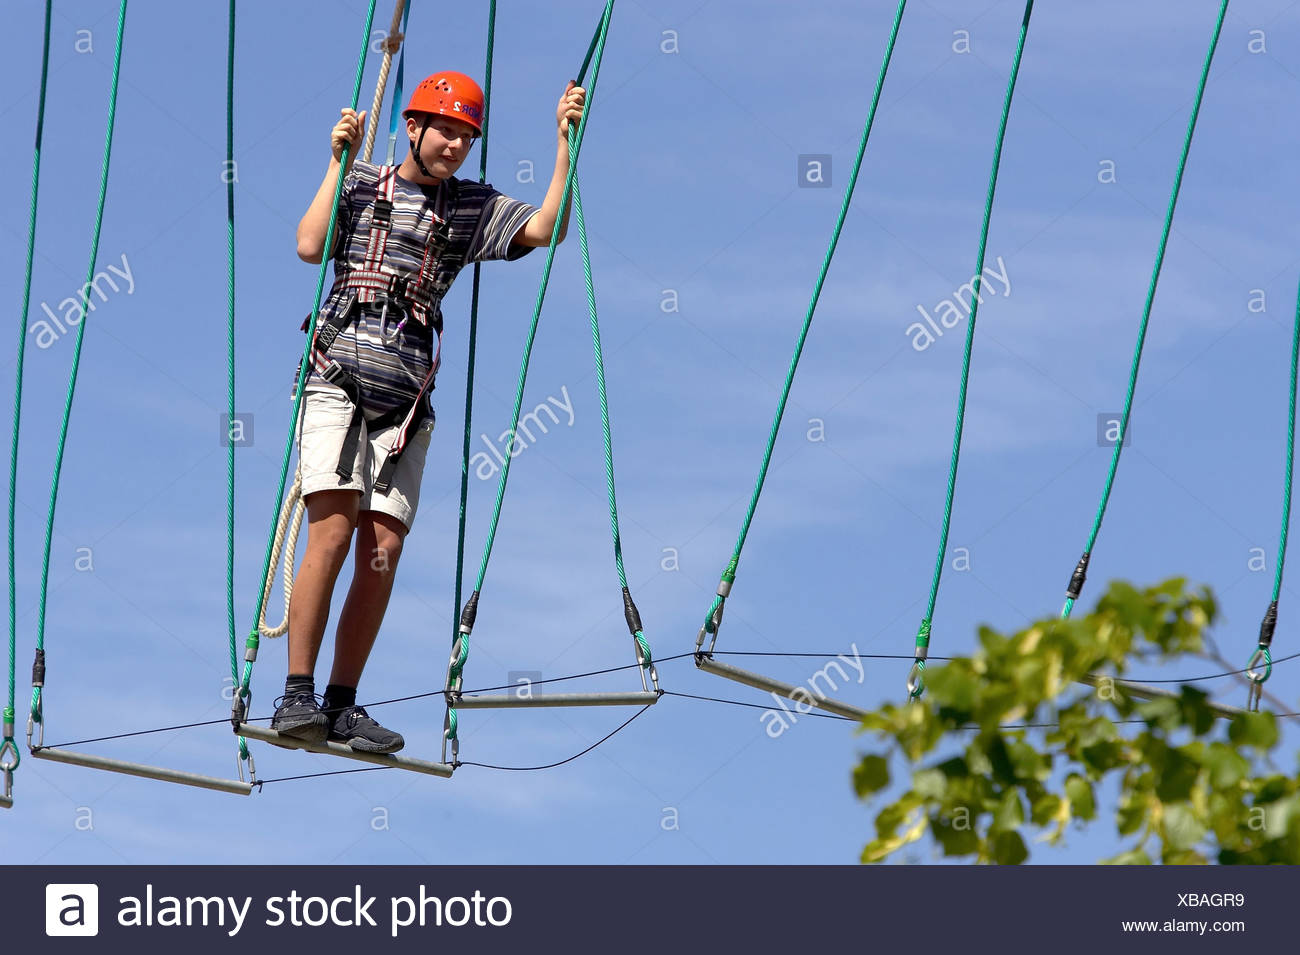 Hochseilgarten Kiel Kiel Ropes And Airy Heights Stock Photo 282359821 Alamy